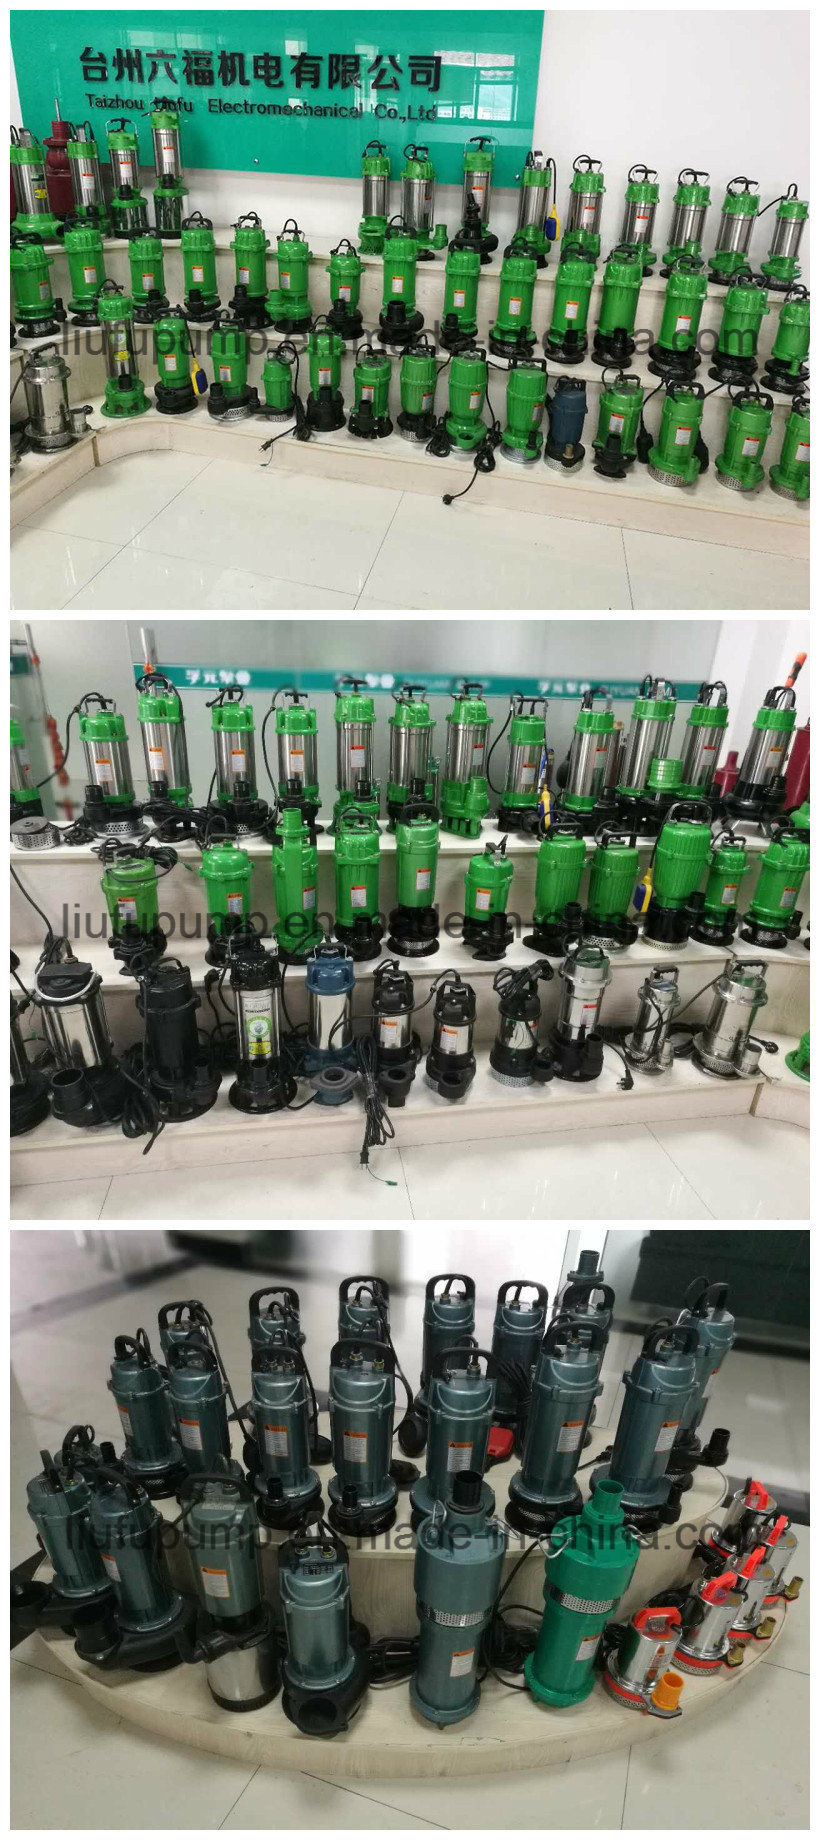 2 Inch 3 Inch Diameter Water Submersible Deep Well Pumps with Stainless Steel Cutter